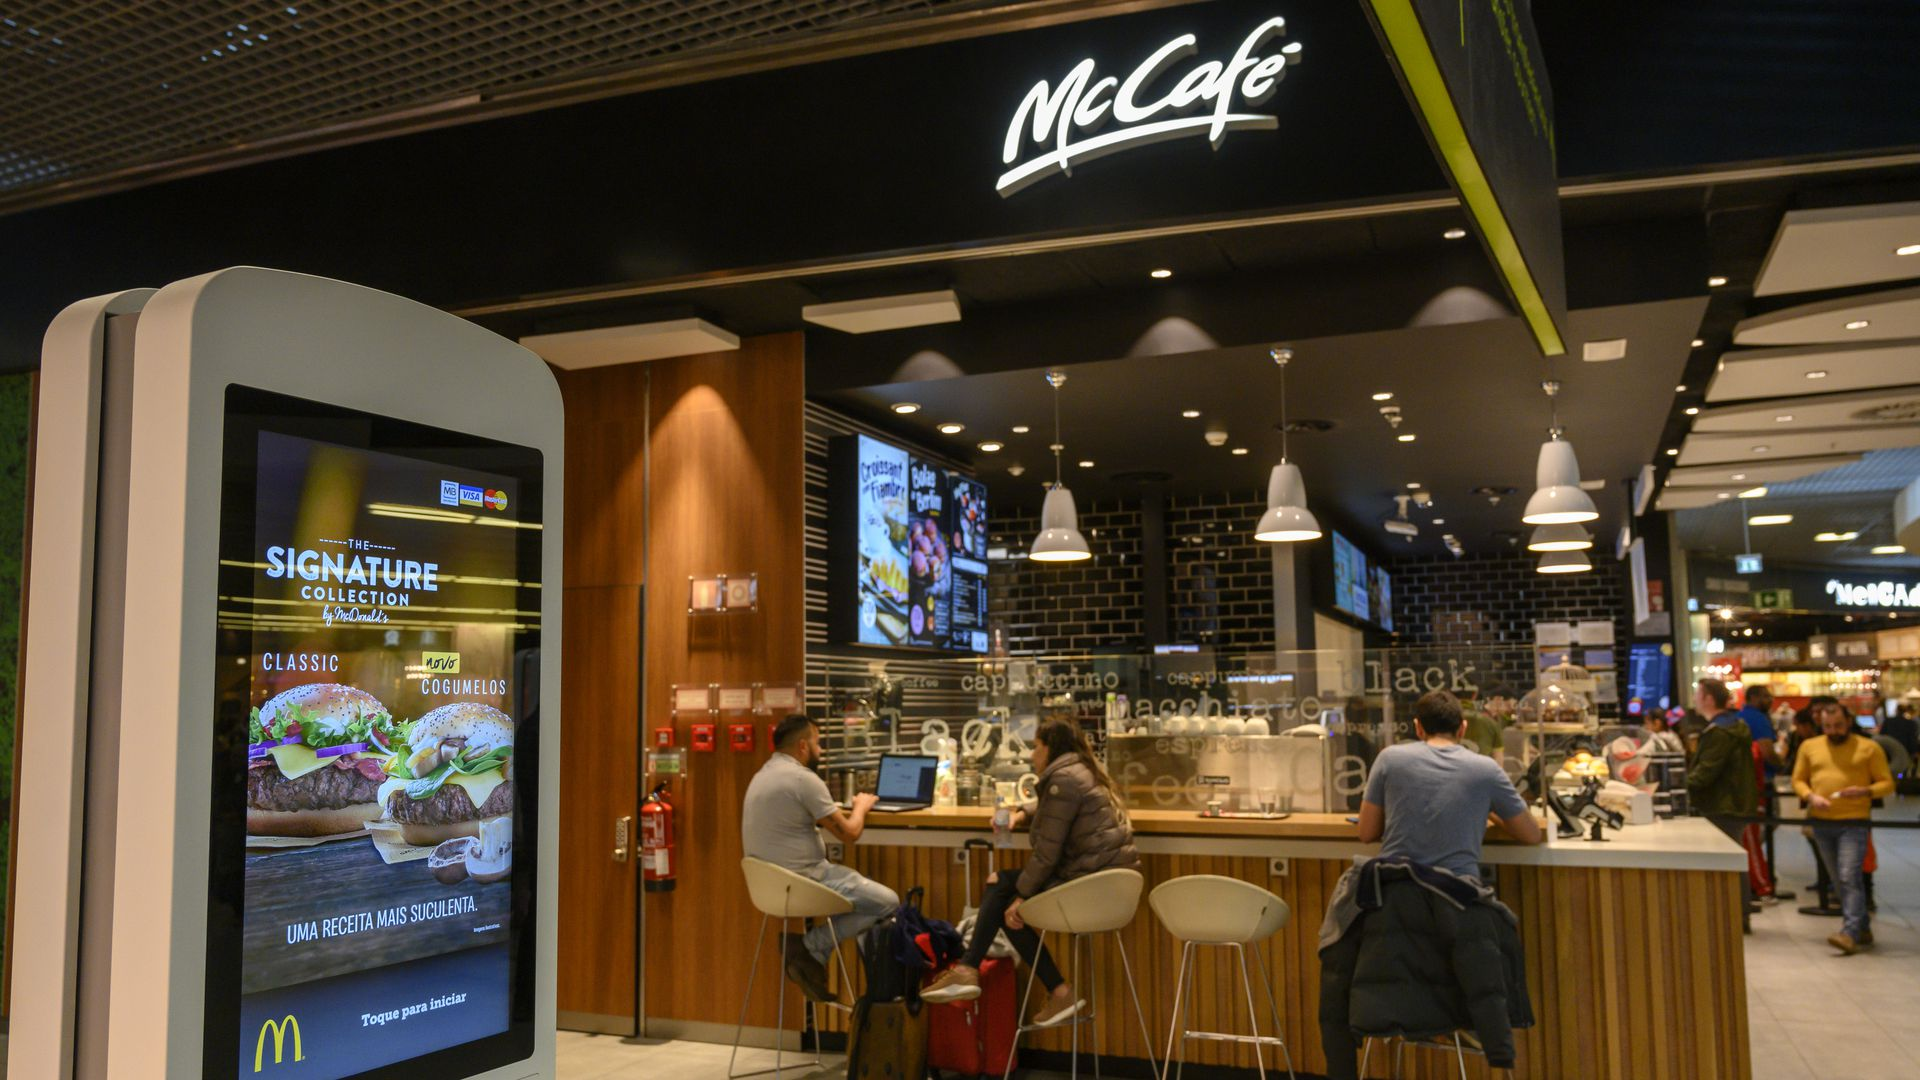 In this image, a man sits at a counter at a McCafe. In the foreground, a touch-screen stands upright for customers to order electronically.